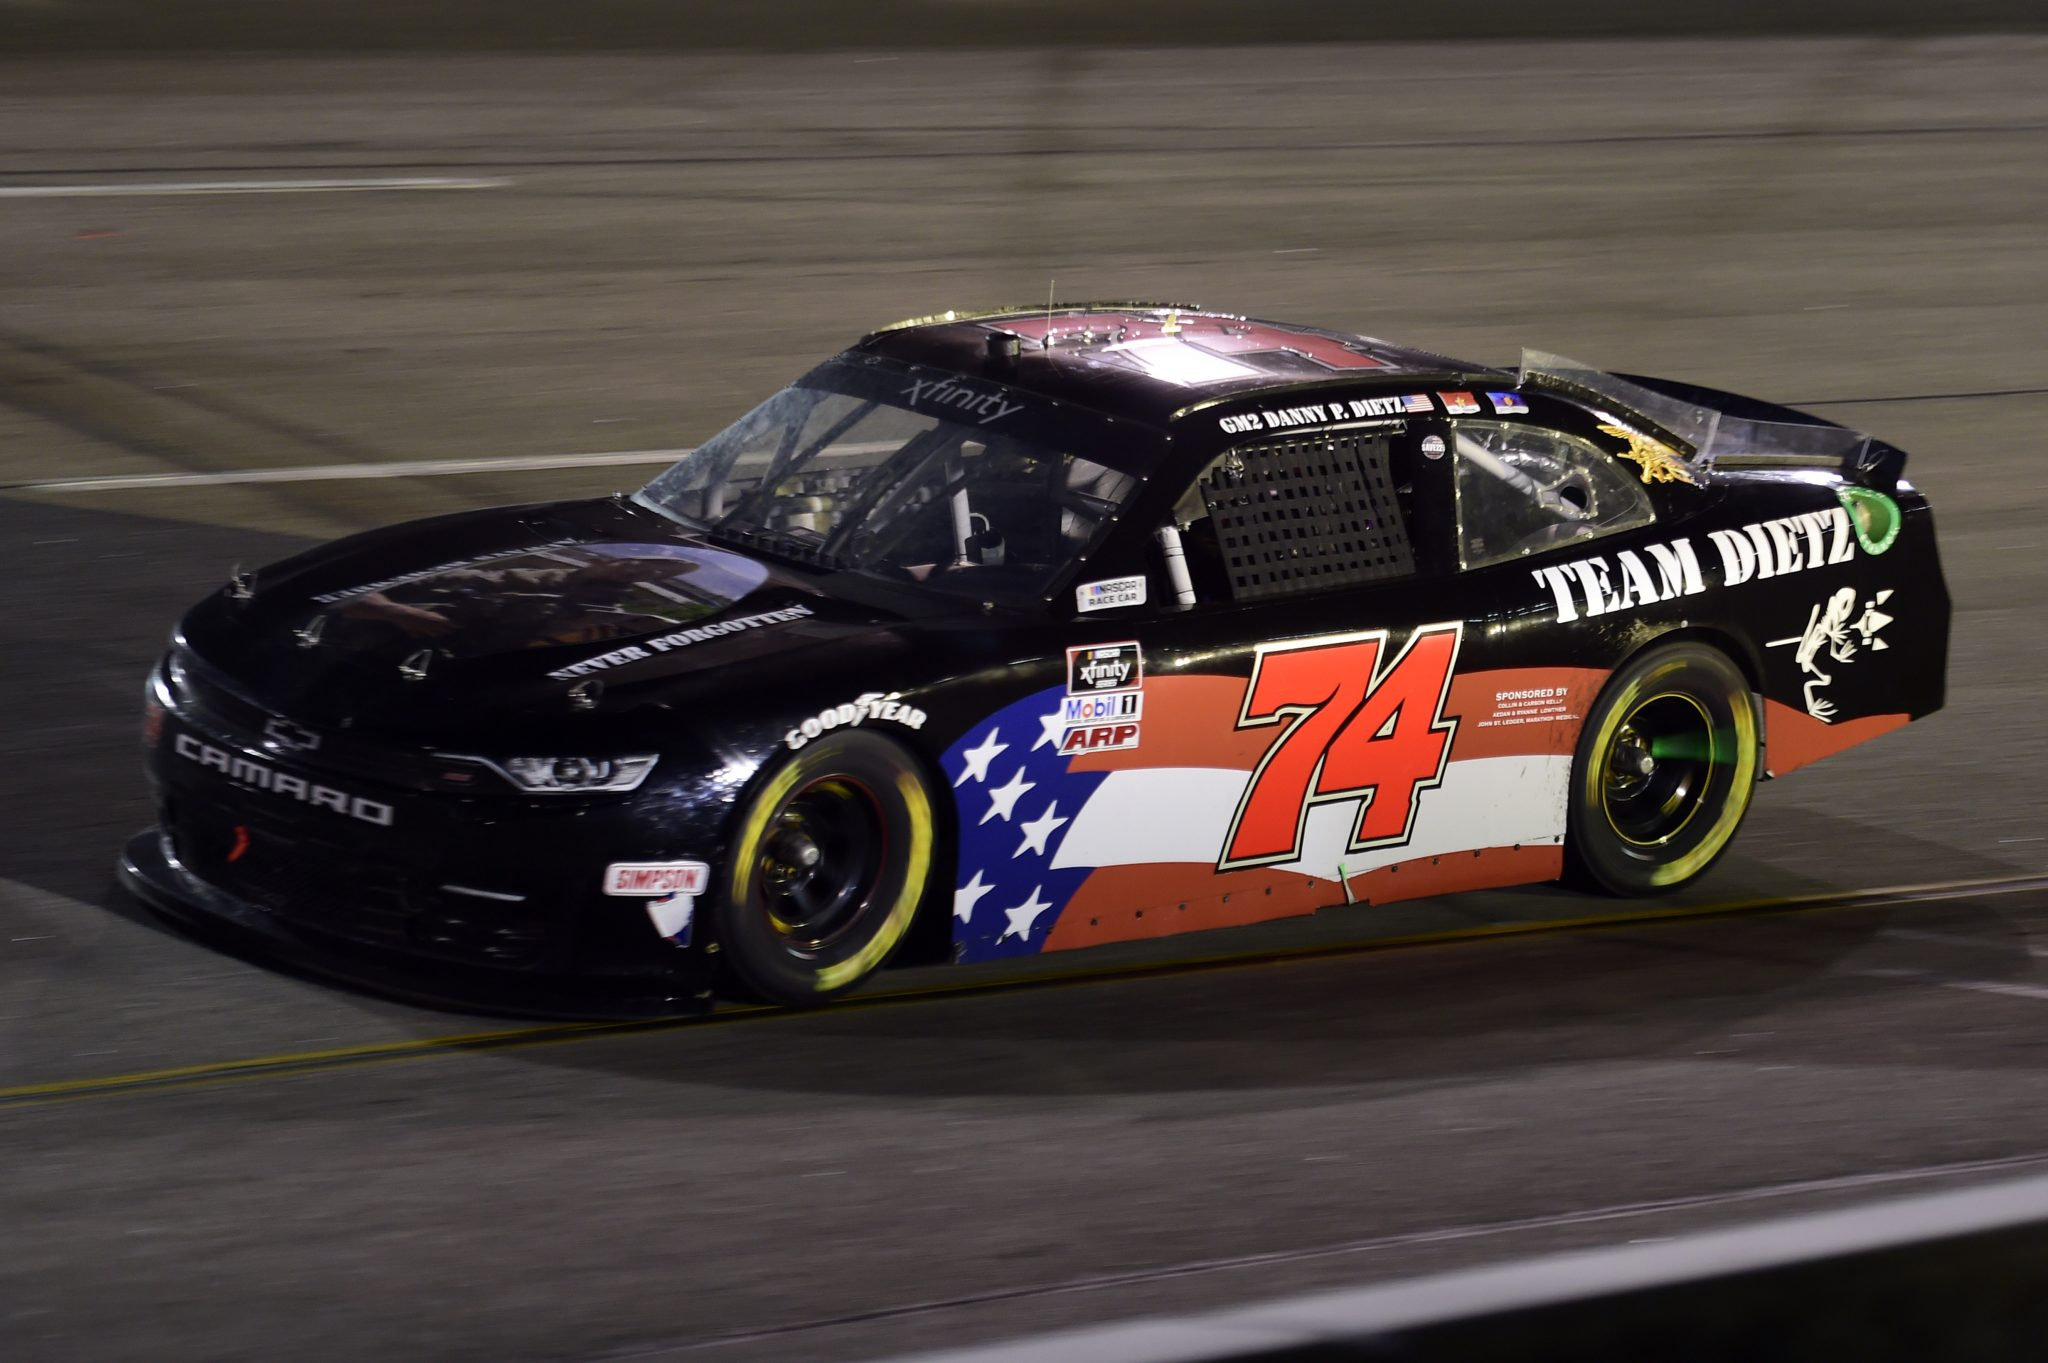 RICHMOND, VIRGINIA - SEPTEMBER 11: Bayley Currey, driver of the #74 Danny Dietz Tribute Chevrolet, drives during the NASCAR Xfinity Series Go Bowling 250 at Richmond Raceway on September 11, 2020 in Richmond, Virginia. (Photo by Jared C. Tilton/Getty Images) | Getty Images